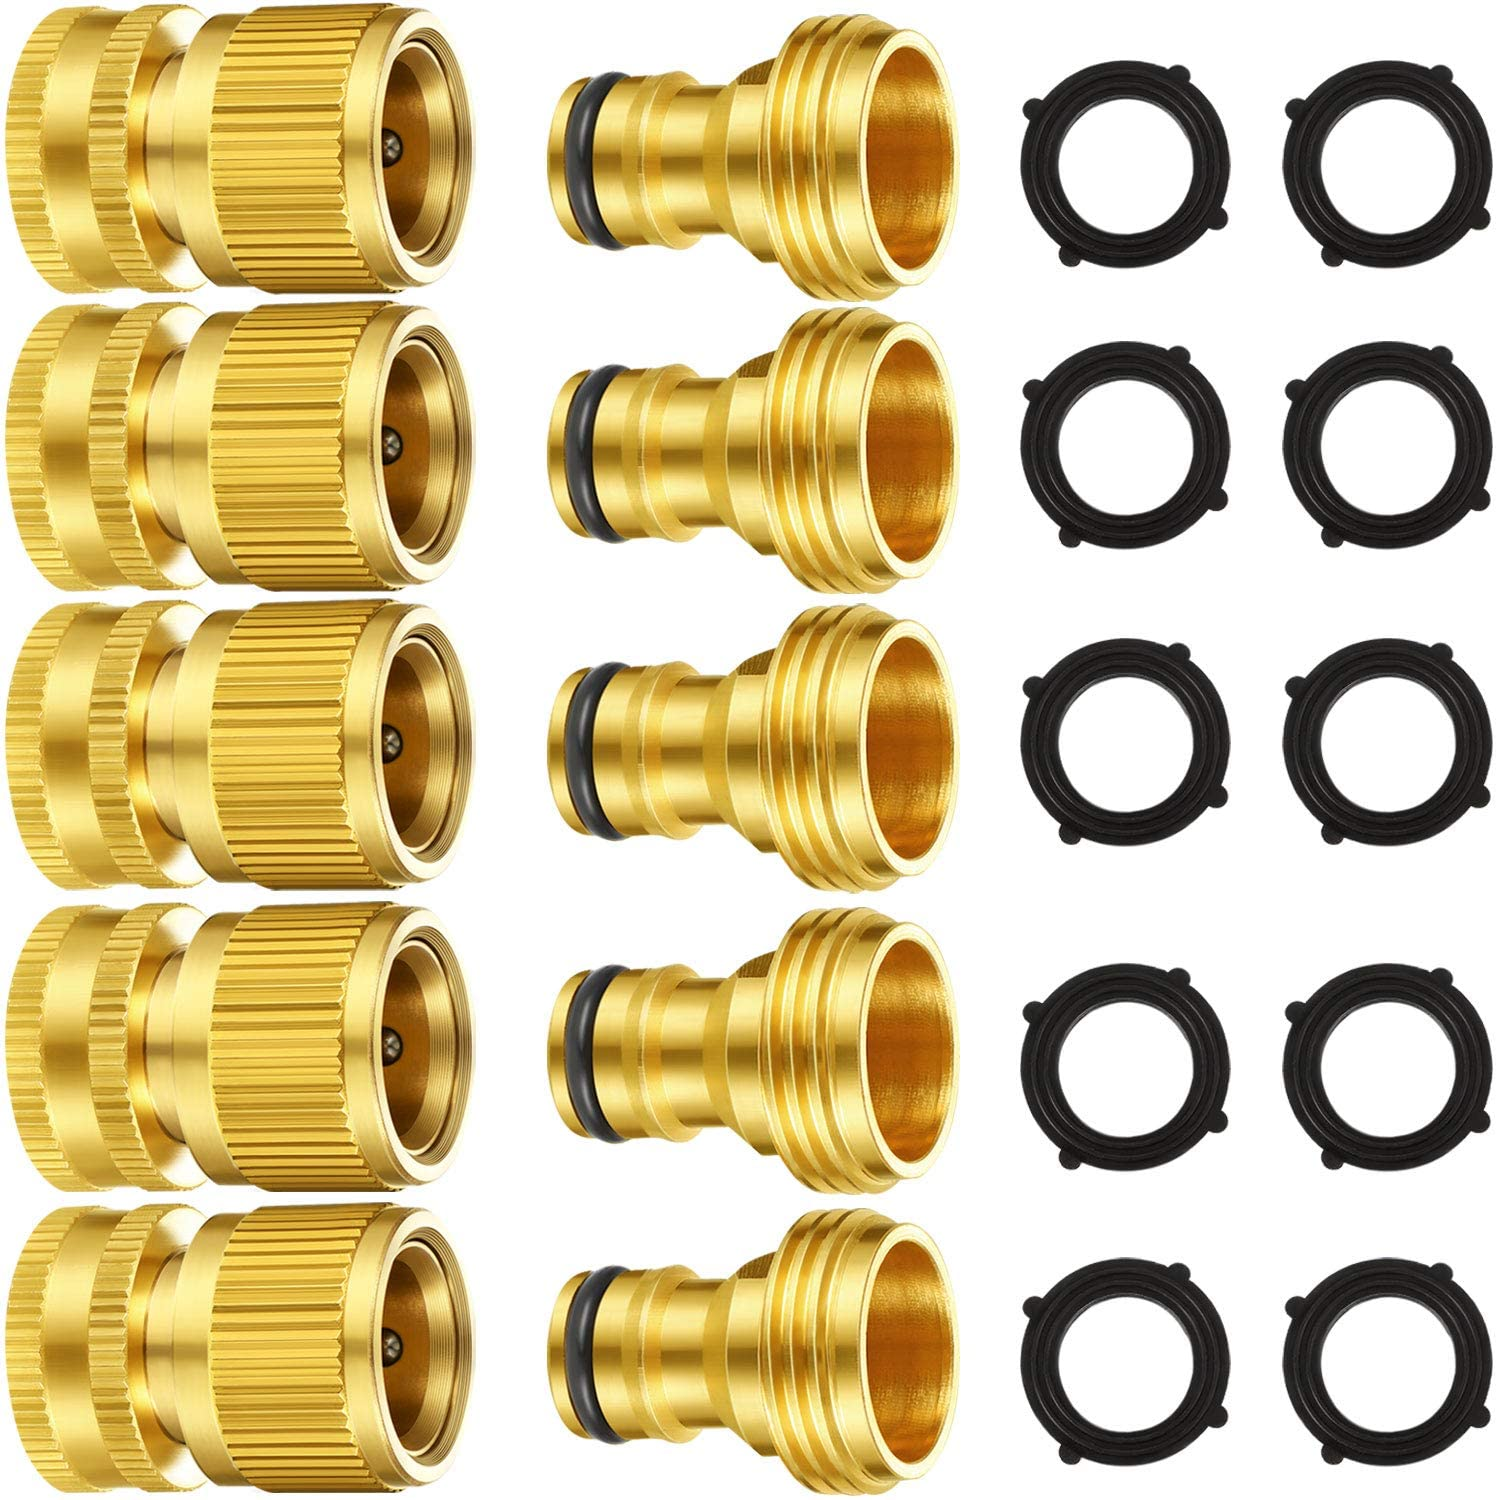 Garden Hose Quick Connect Fittings Solid Brass Quick Connector 3/4 Inch GHT Garden Water Hose Connectors with Extra Rubber Washers, Male and Female (5 Set)